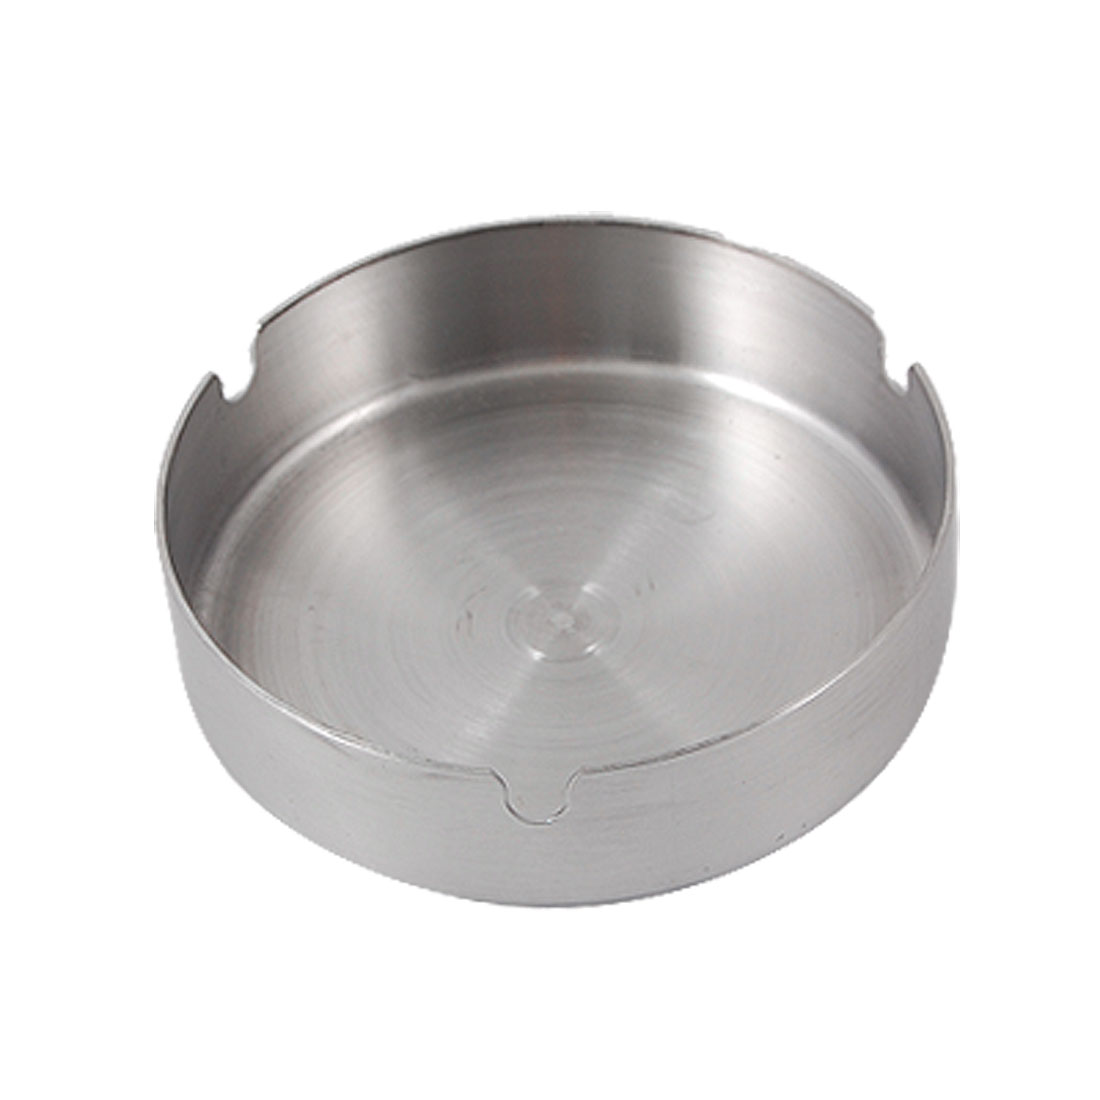 Home-Office-Flat-Bottom-Round-Stainless-Steel-Cigaretter-Ash-Holder-Tray